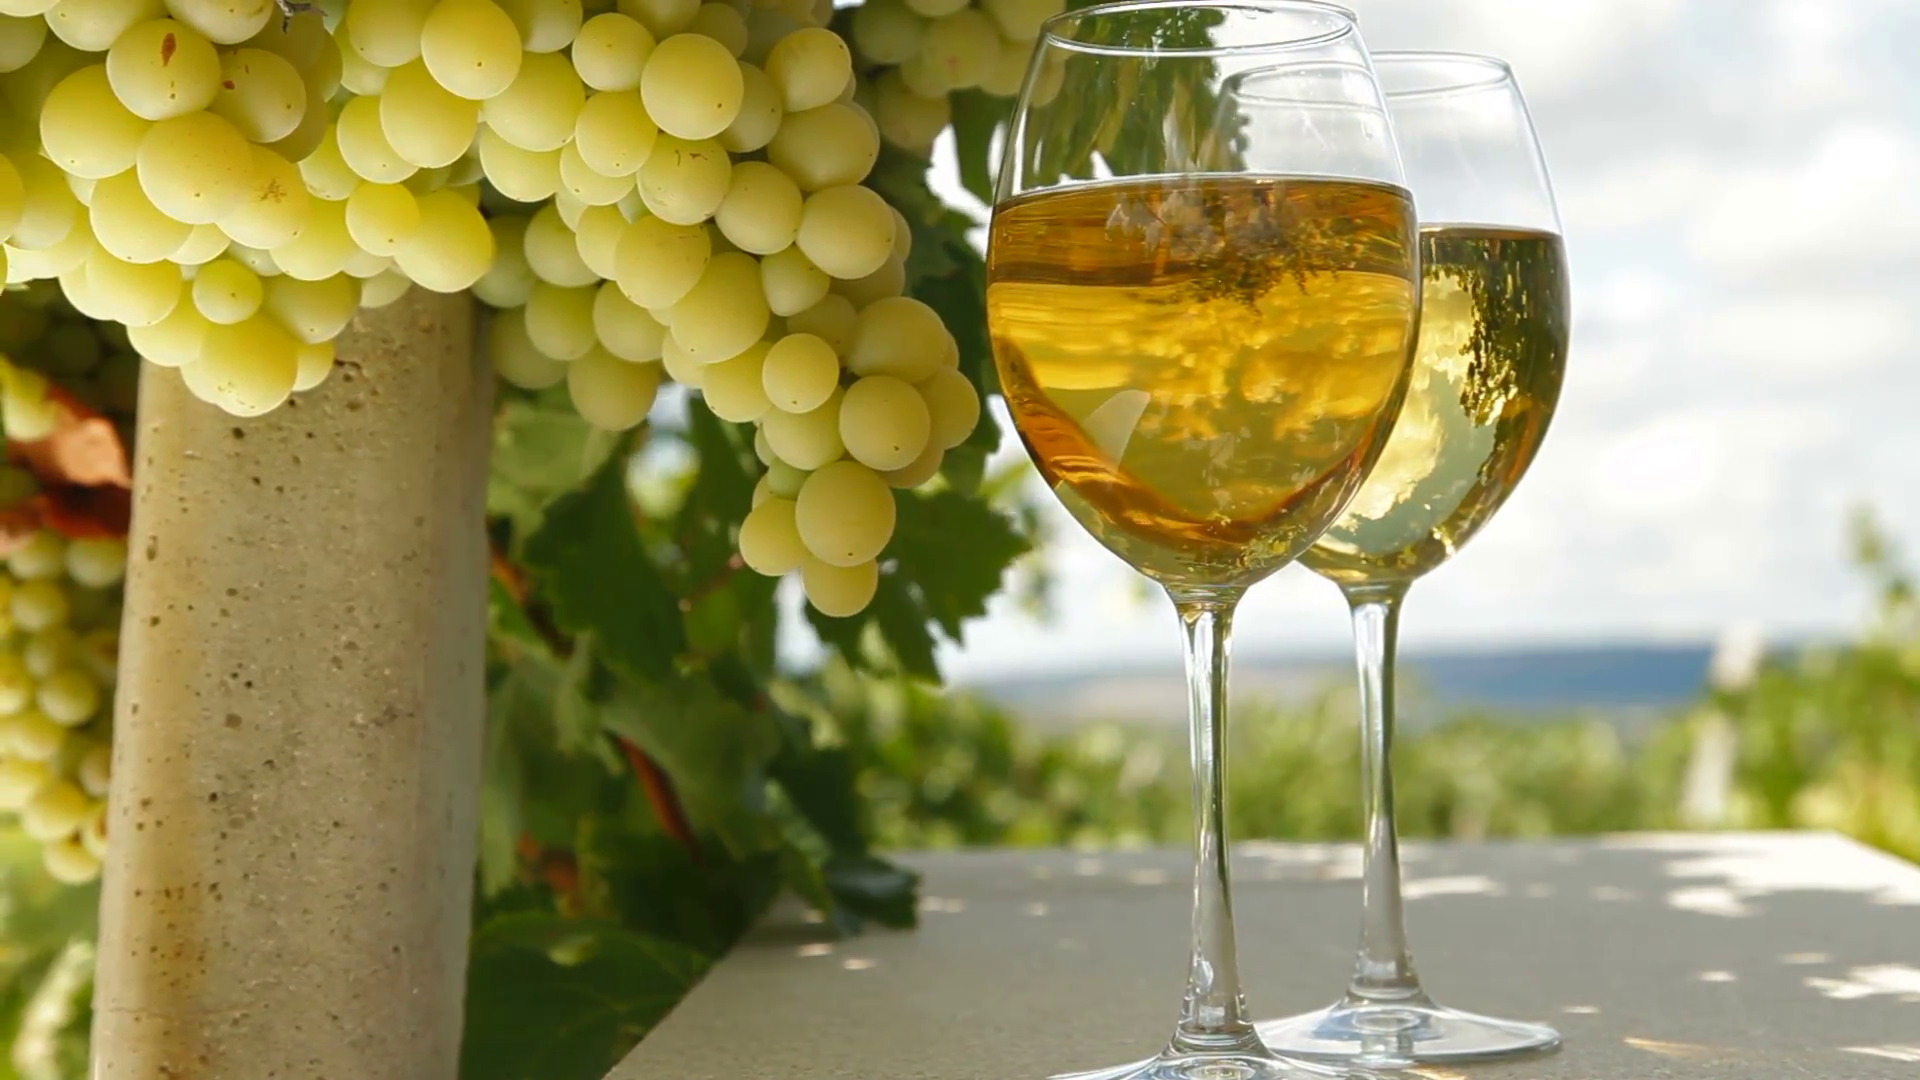 two-glasses-of-white-wine-on-the-table-and-bunch-of-muscat-white-grapes-in-vineyard-tracking-shot_4dxxntyjx__F0014